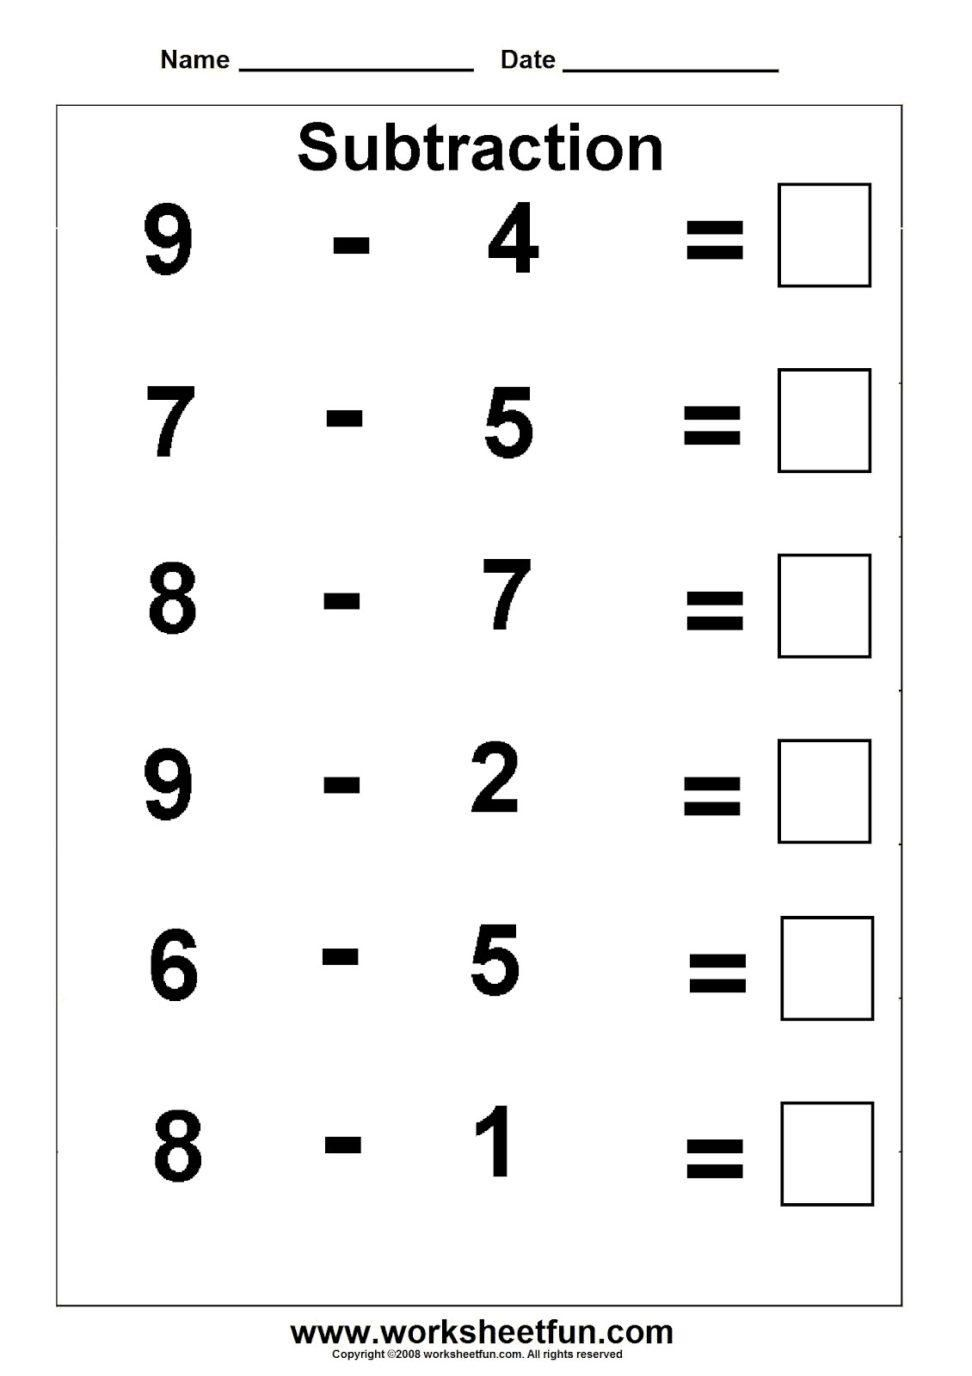 Kindergarten Math Worksheets Free Pdf Kid Criabooks Criabooks